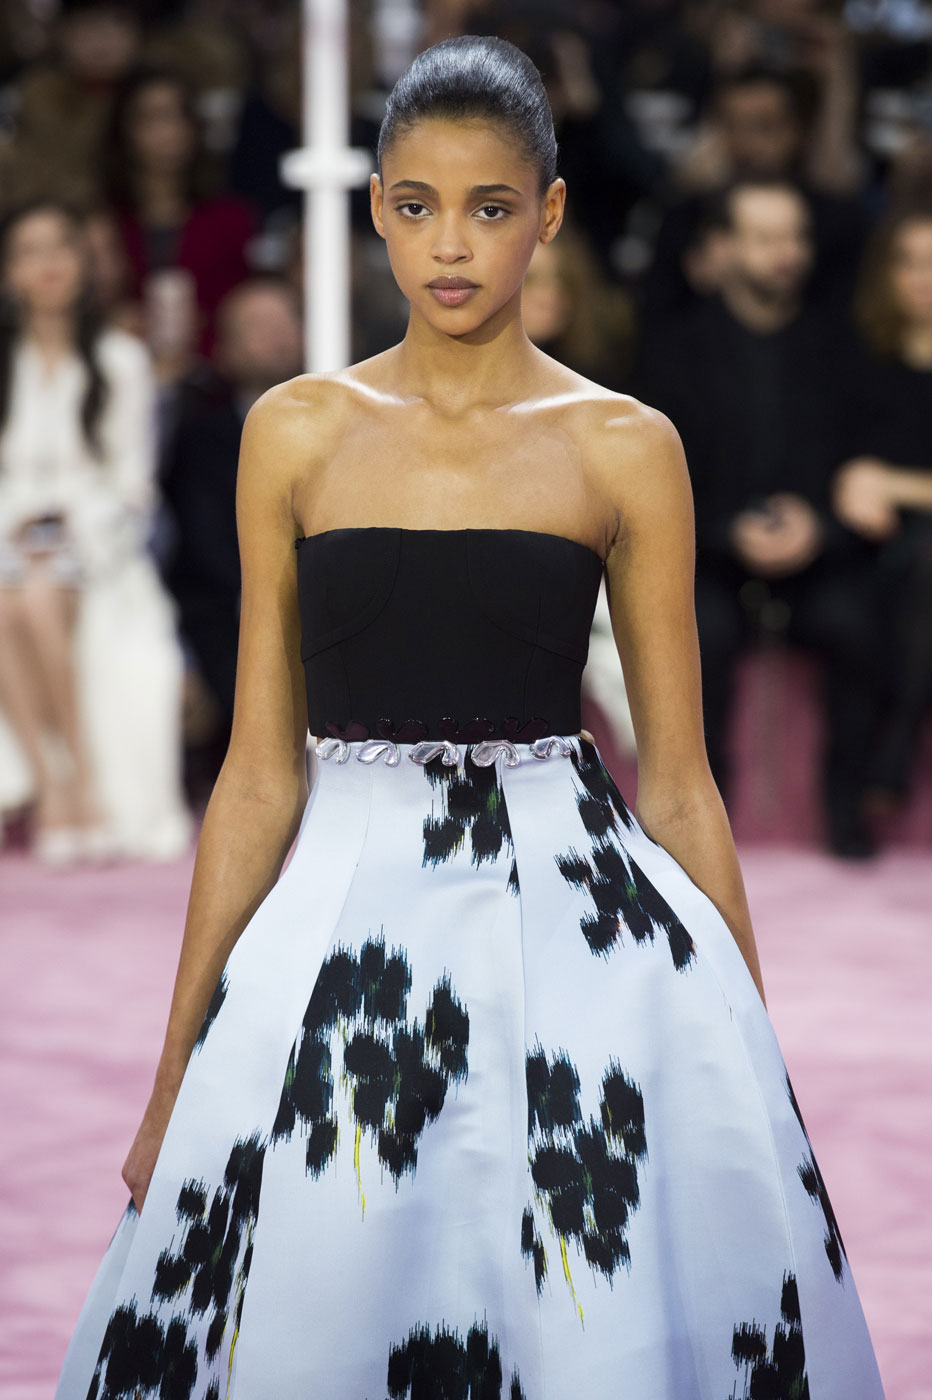 Christian-Dior-fashion-runway-show-haute-couture-paris-spring-summer-2015-the-impression-018